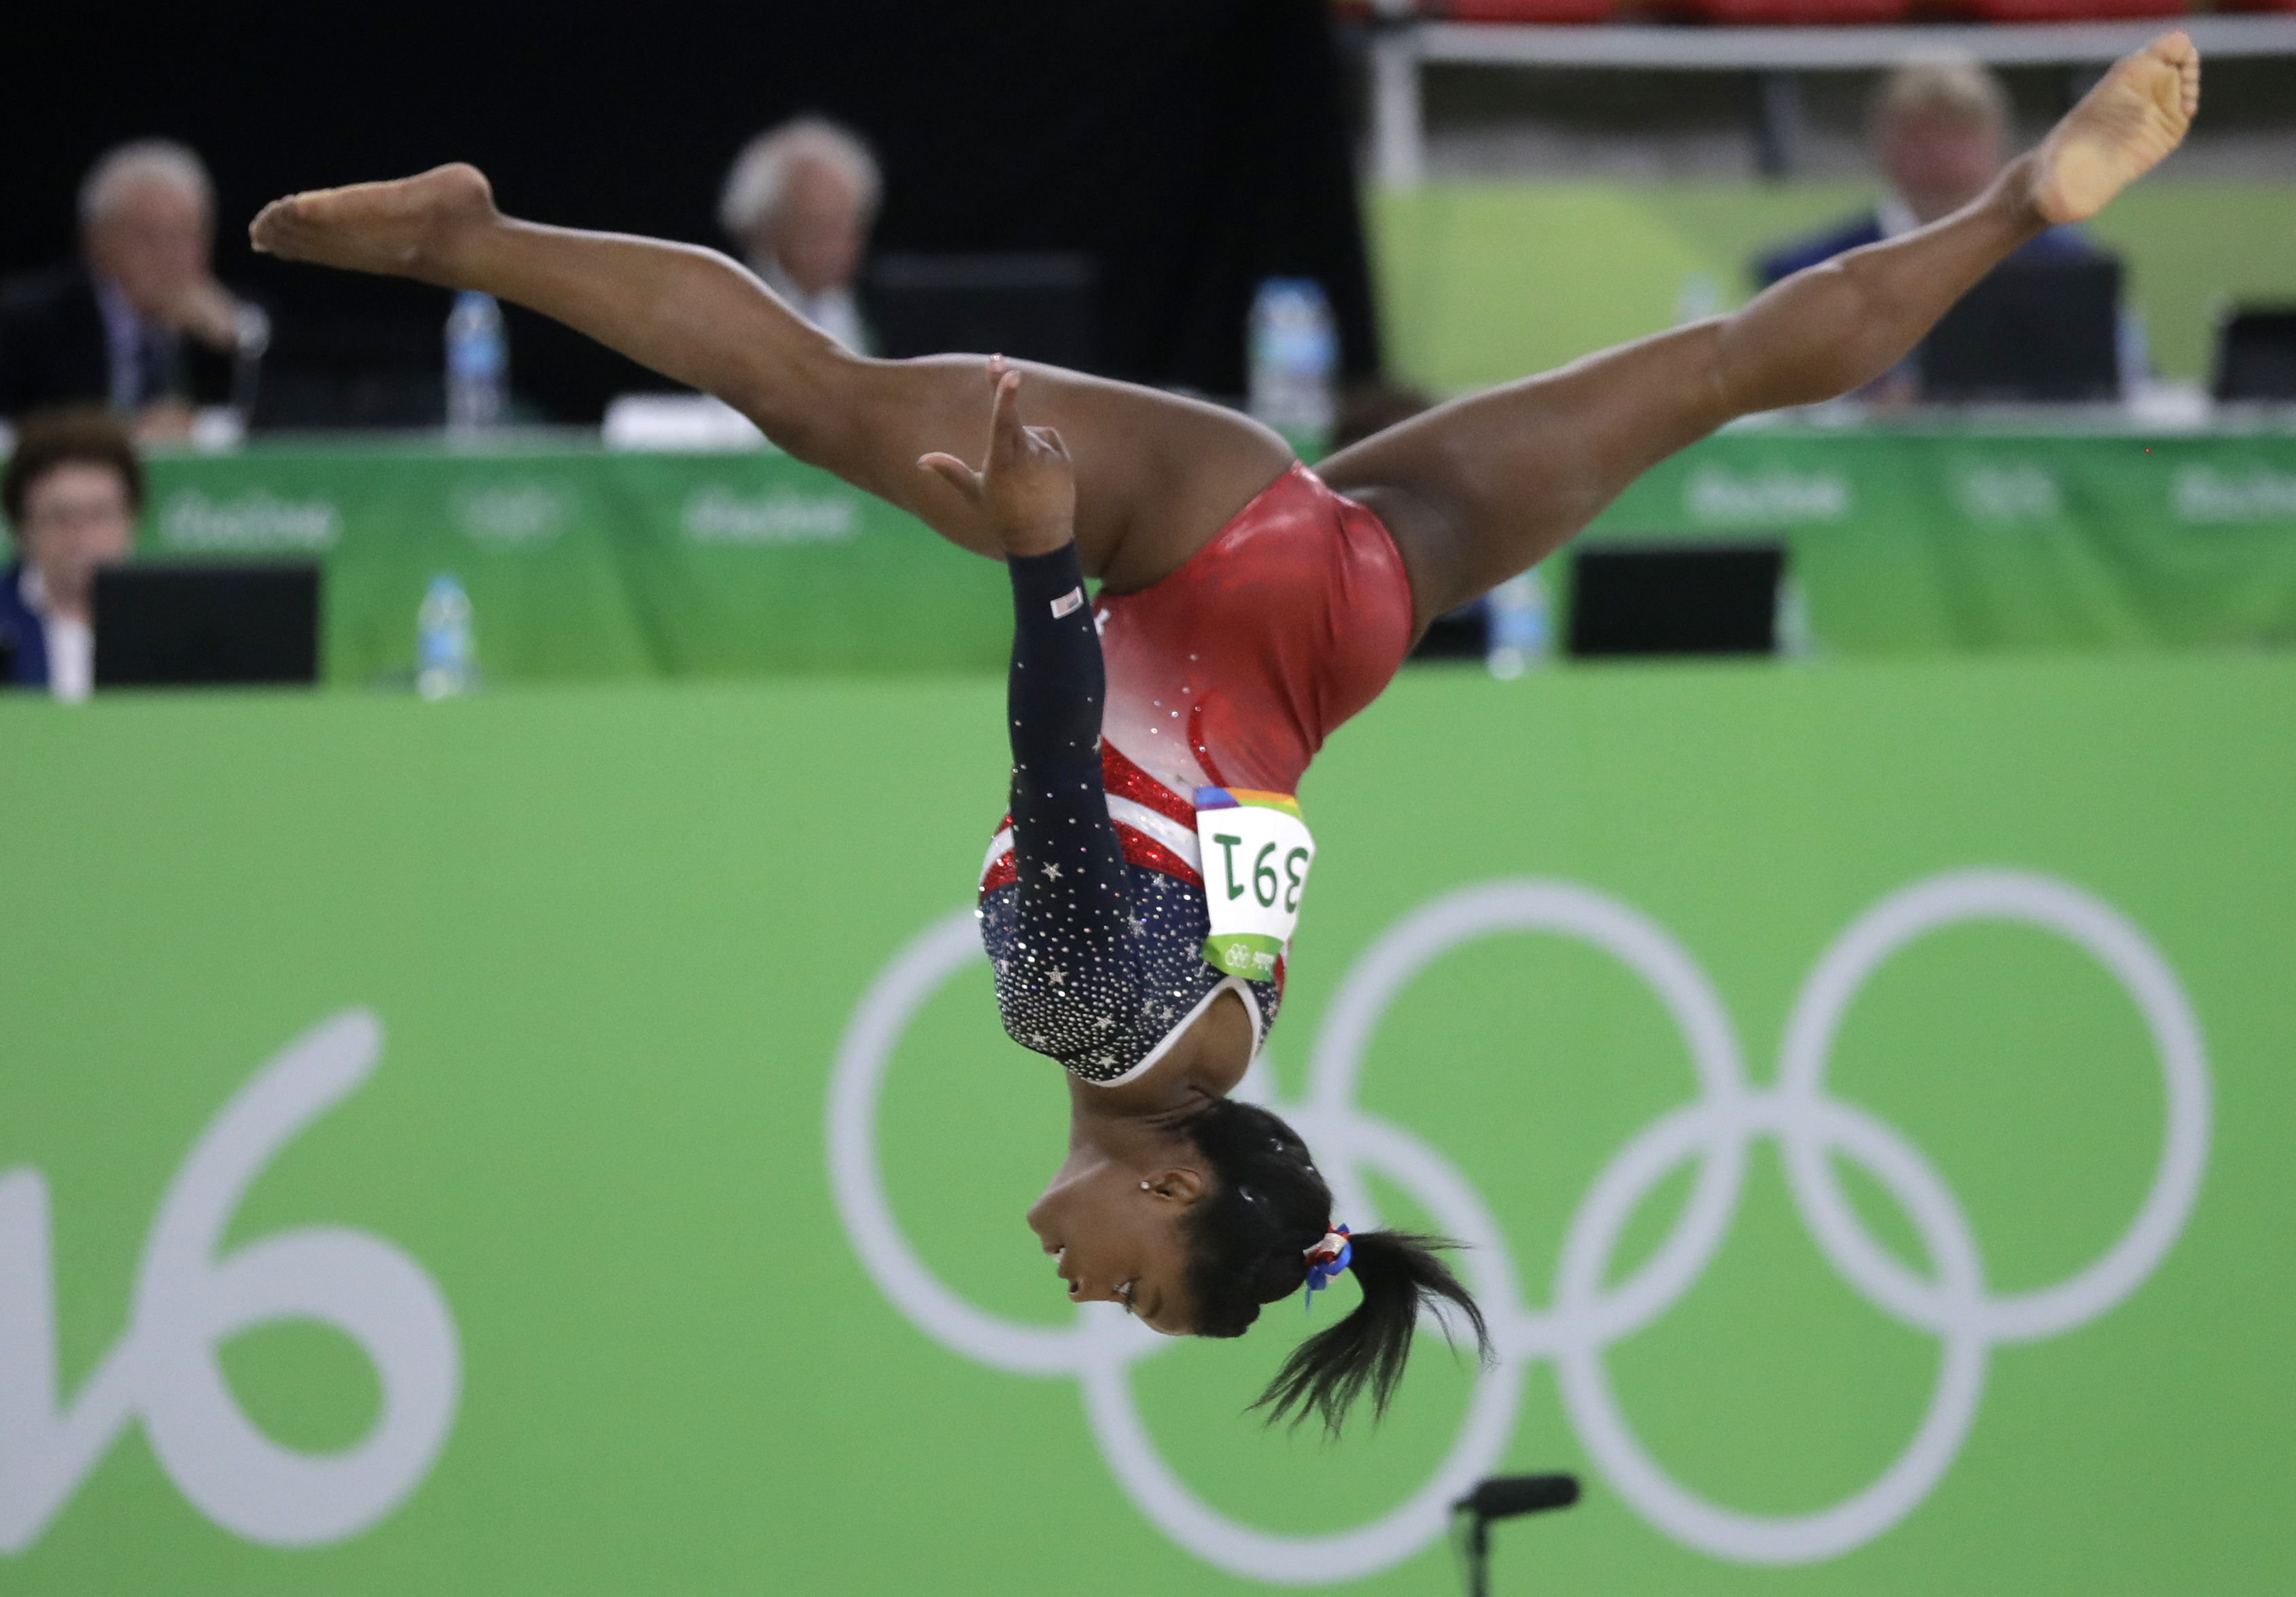 United States' Simone Biles performs on the floor during the artistic gymnastics women's team final at the 2016 Summer Olympics in Rio de Janeiro, Brazil, Tuesday, Aug. 9, 2016. (AP Photo/Julio Cortez)